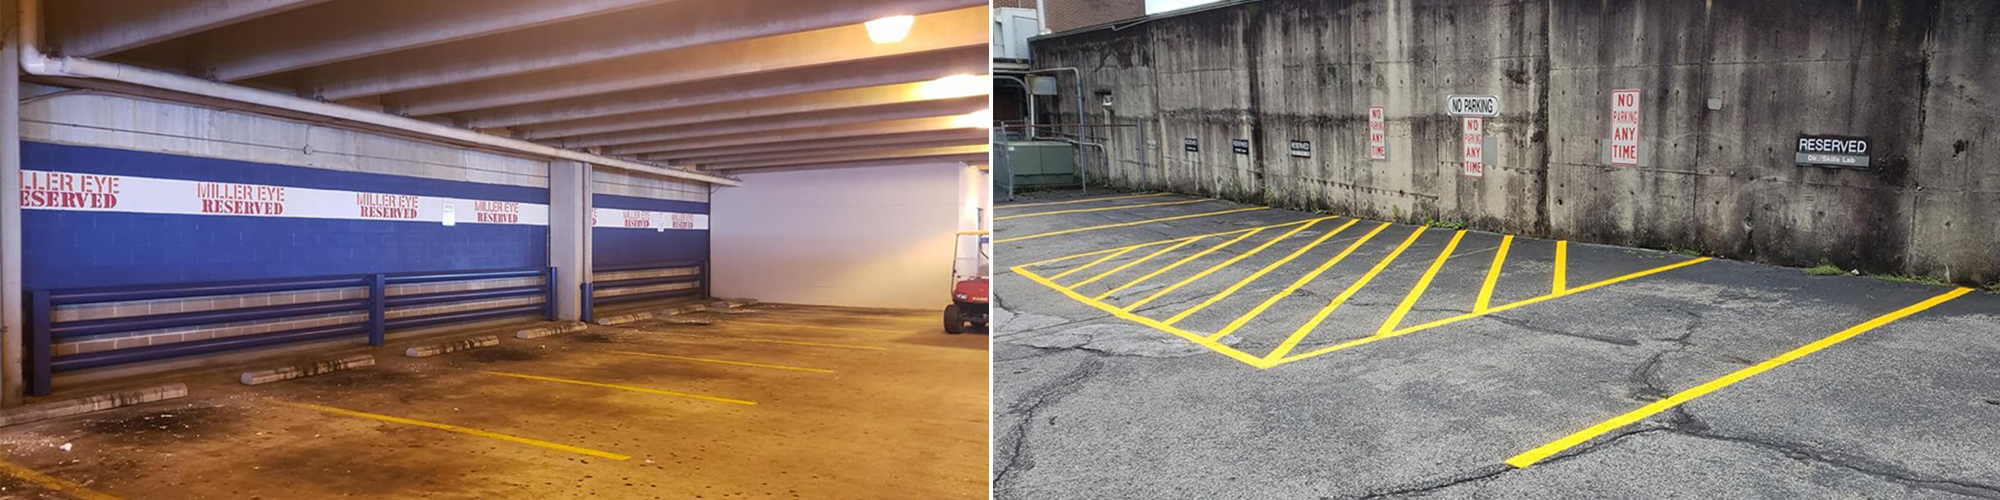 Parking Lot Maintenance in Chattanooga, TN